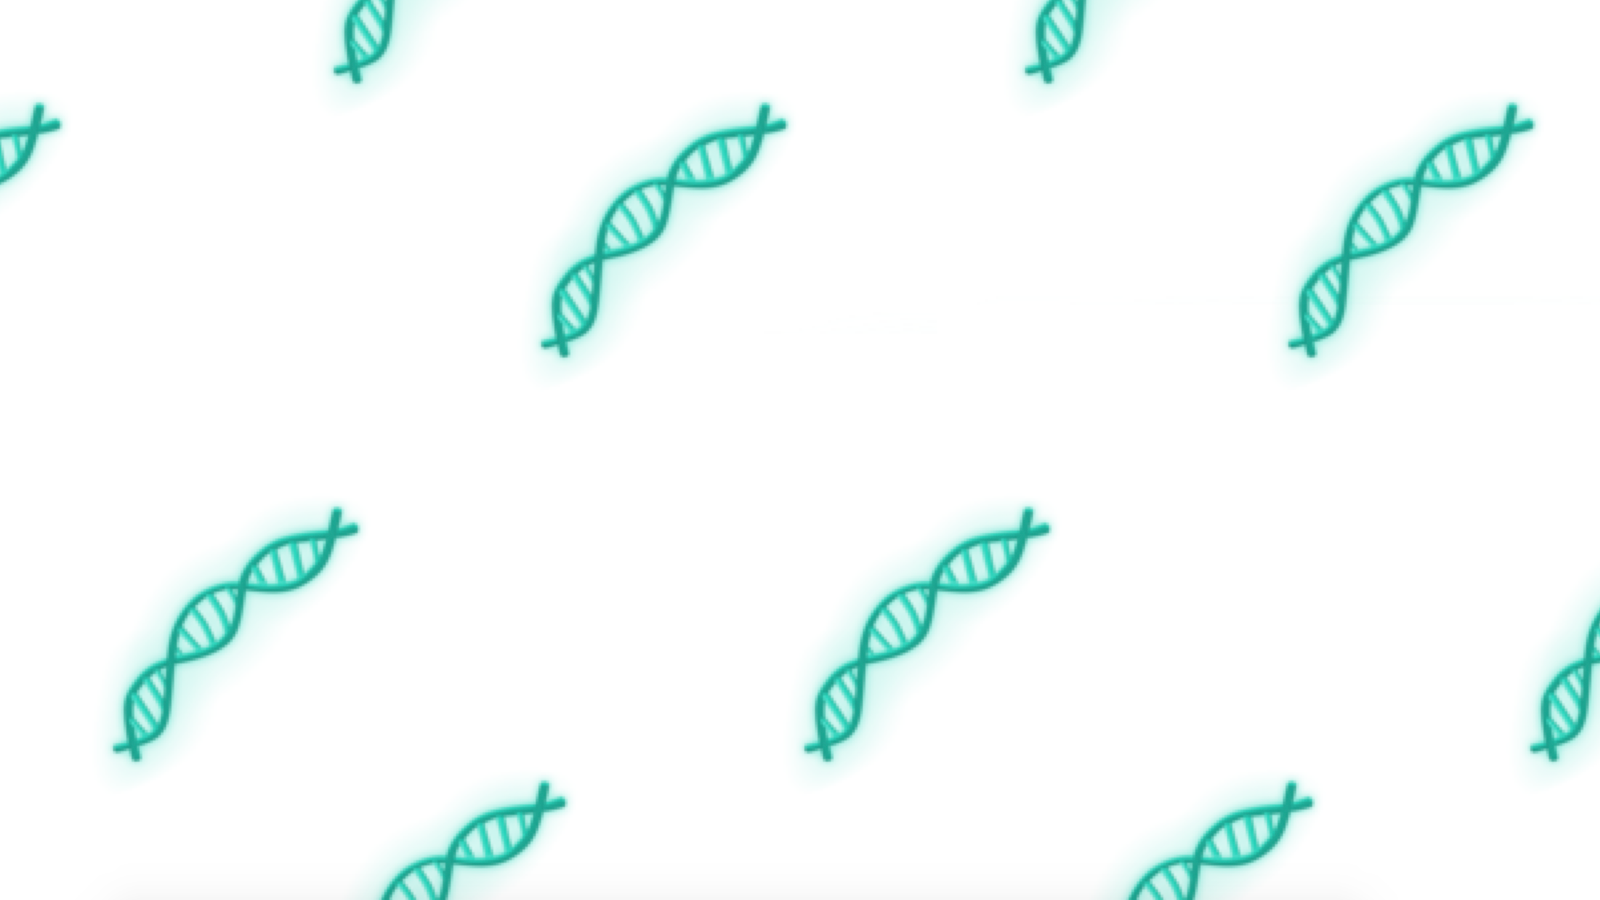 We're Getting a DNA Emoji—but It's Twisted the Wrong Way